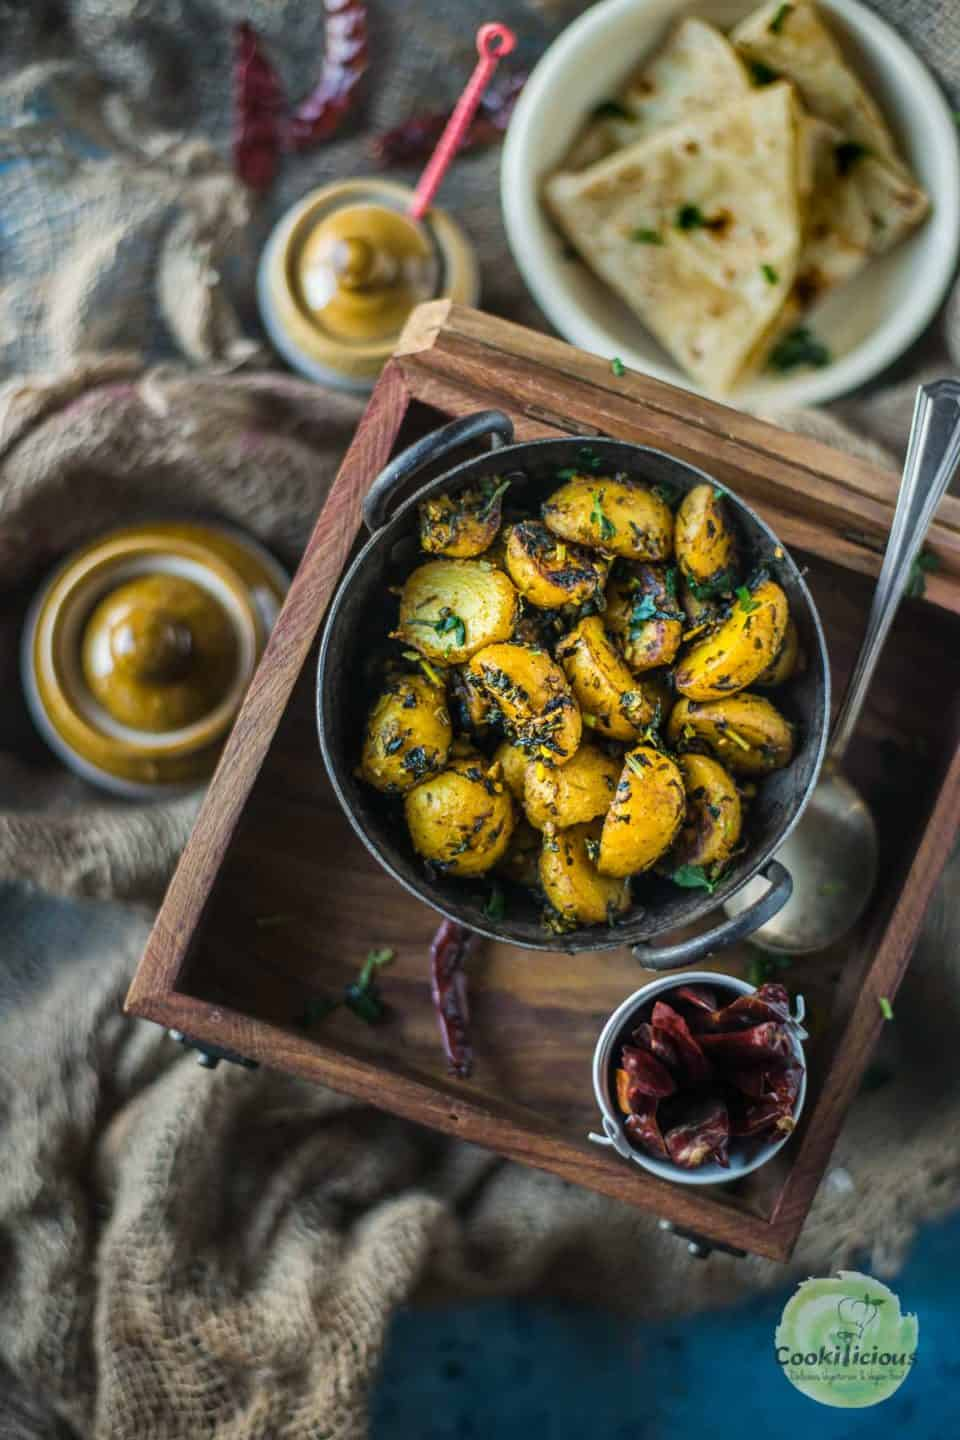 Aloo Methi served in a kadai and placed on a wooden tray